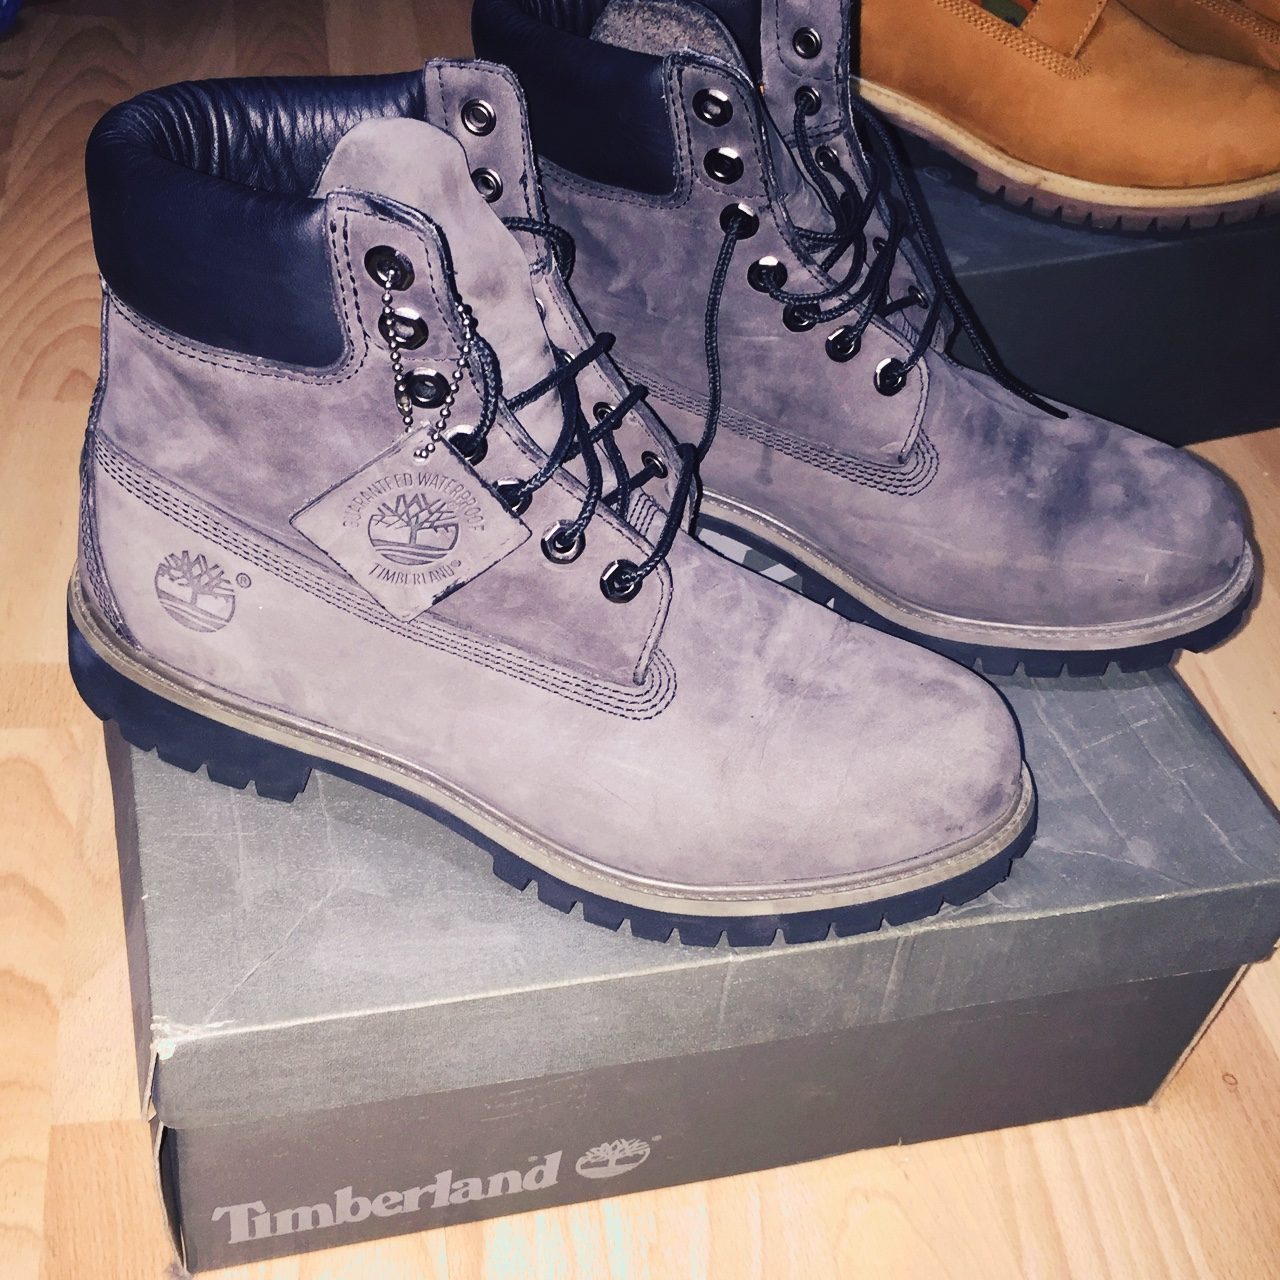 Rare men's 6 inch charcoal grey timberland boots in Depop